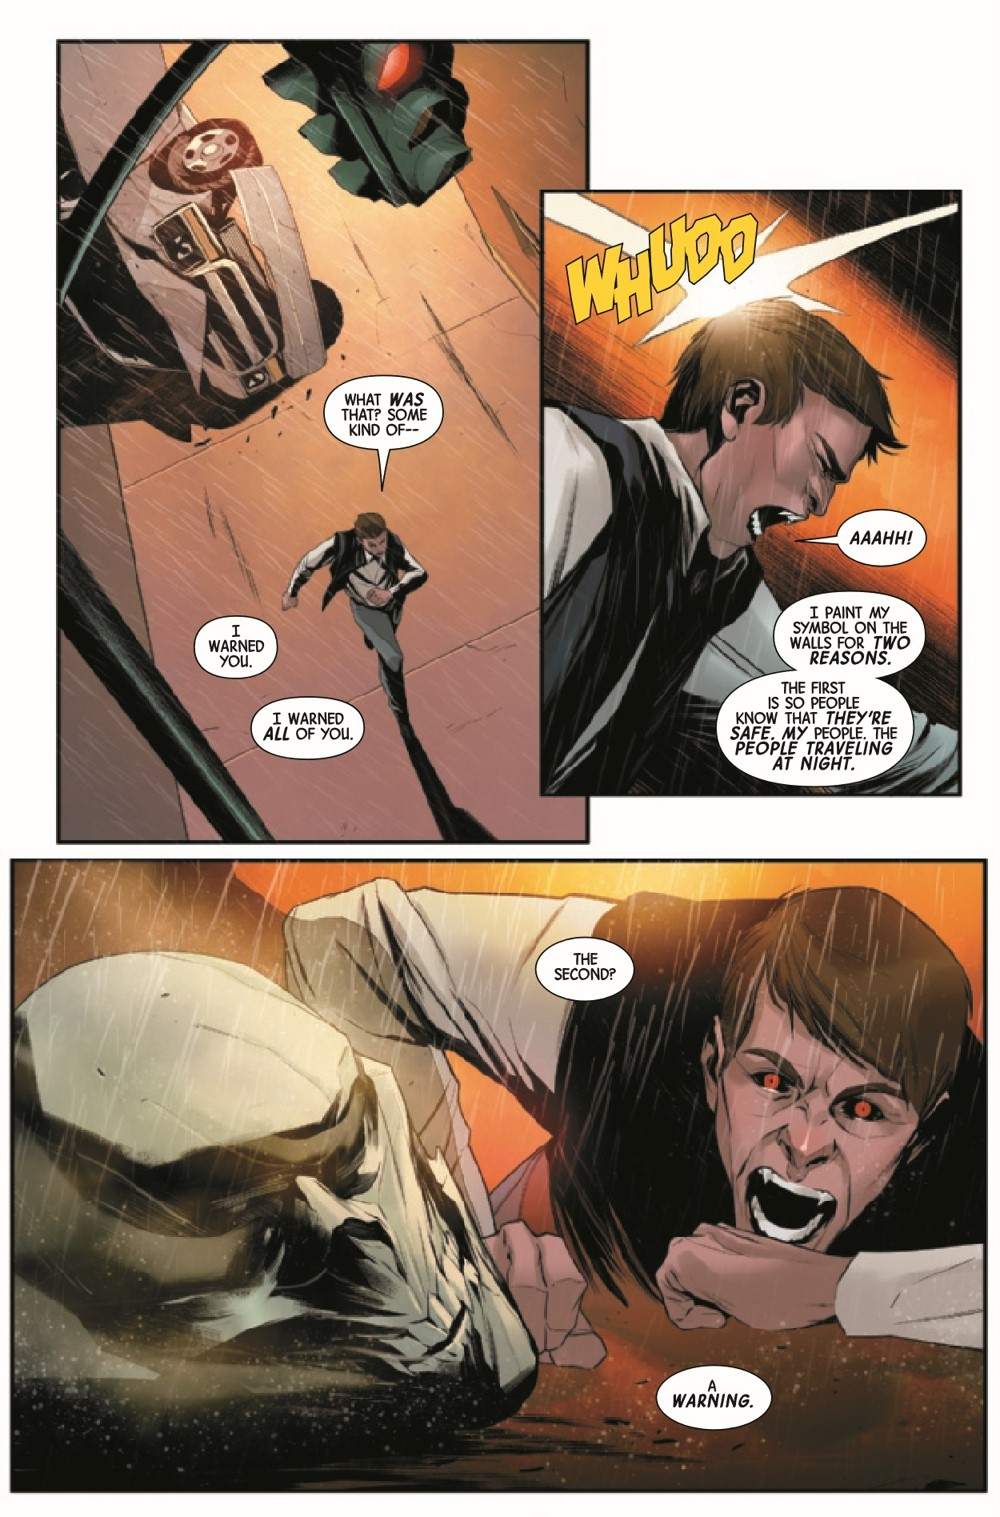 MOONKN2021001_Preview-8 ComicList Previews: MOON KNIGHT #1